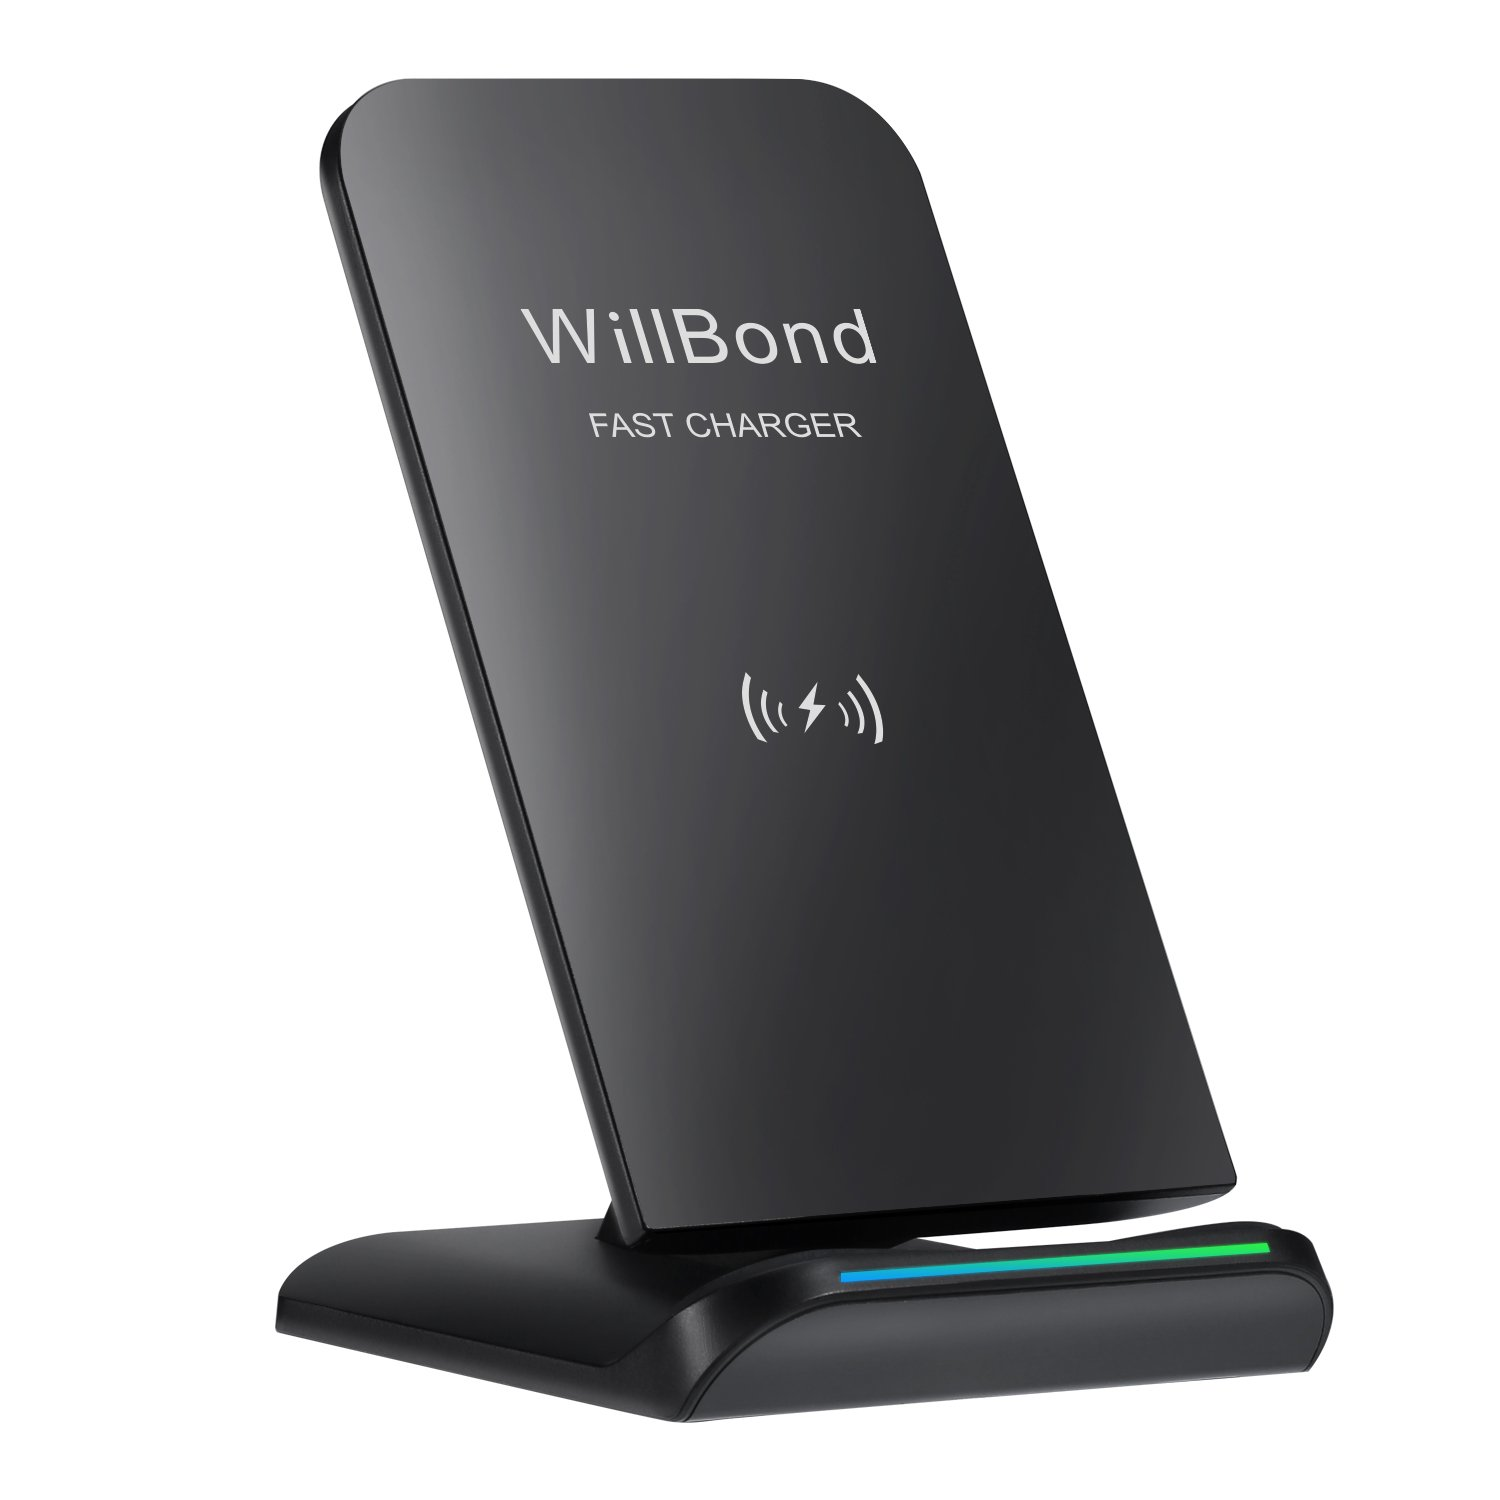 Amazon Willbond S9 S9 Fast Wireless Charger 2 Coils QI Wireless Charging Stand for iPhone X 8 8 Plus Galaxy S9 S9 Note 8 S8 S8 Plus S7